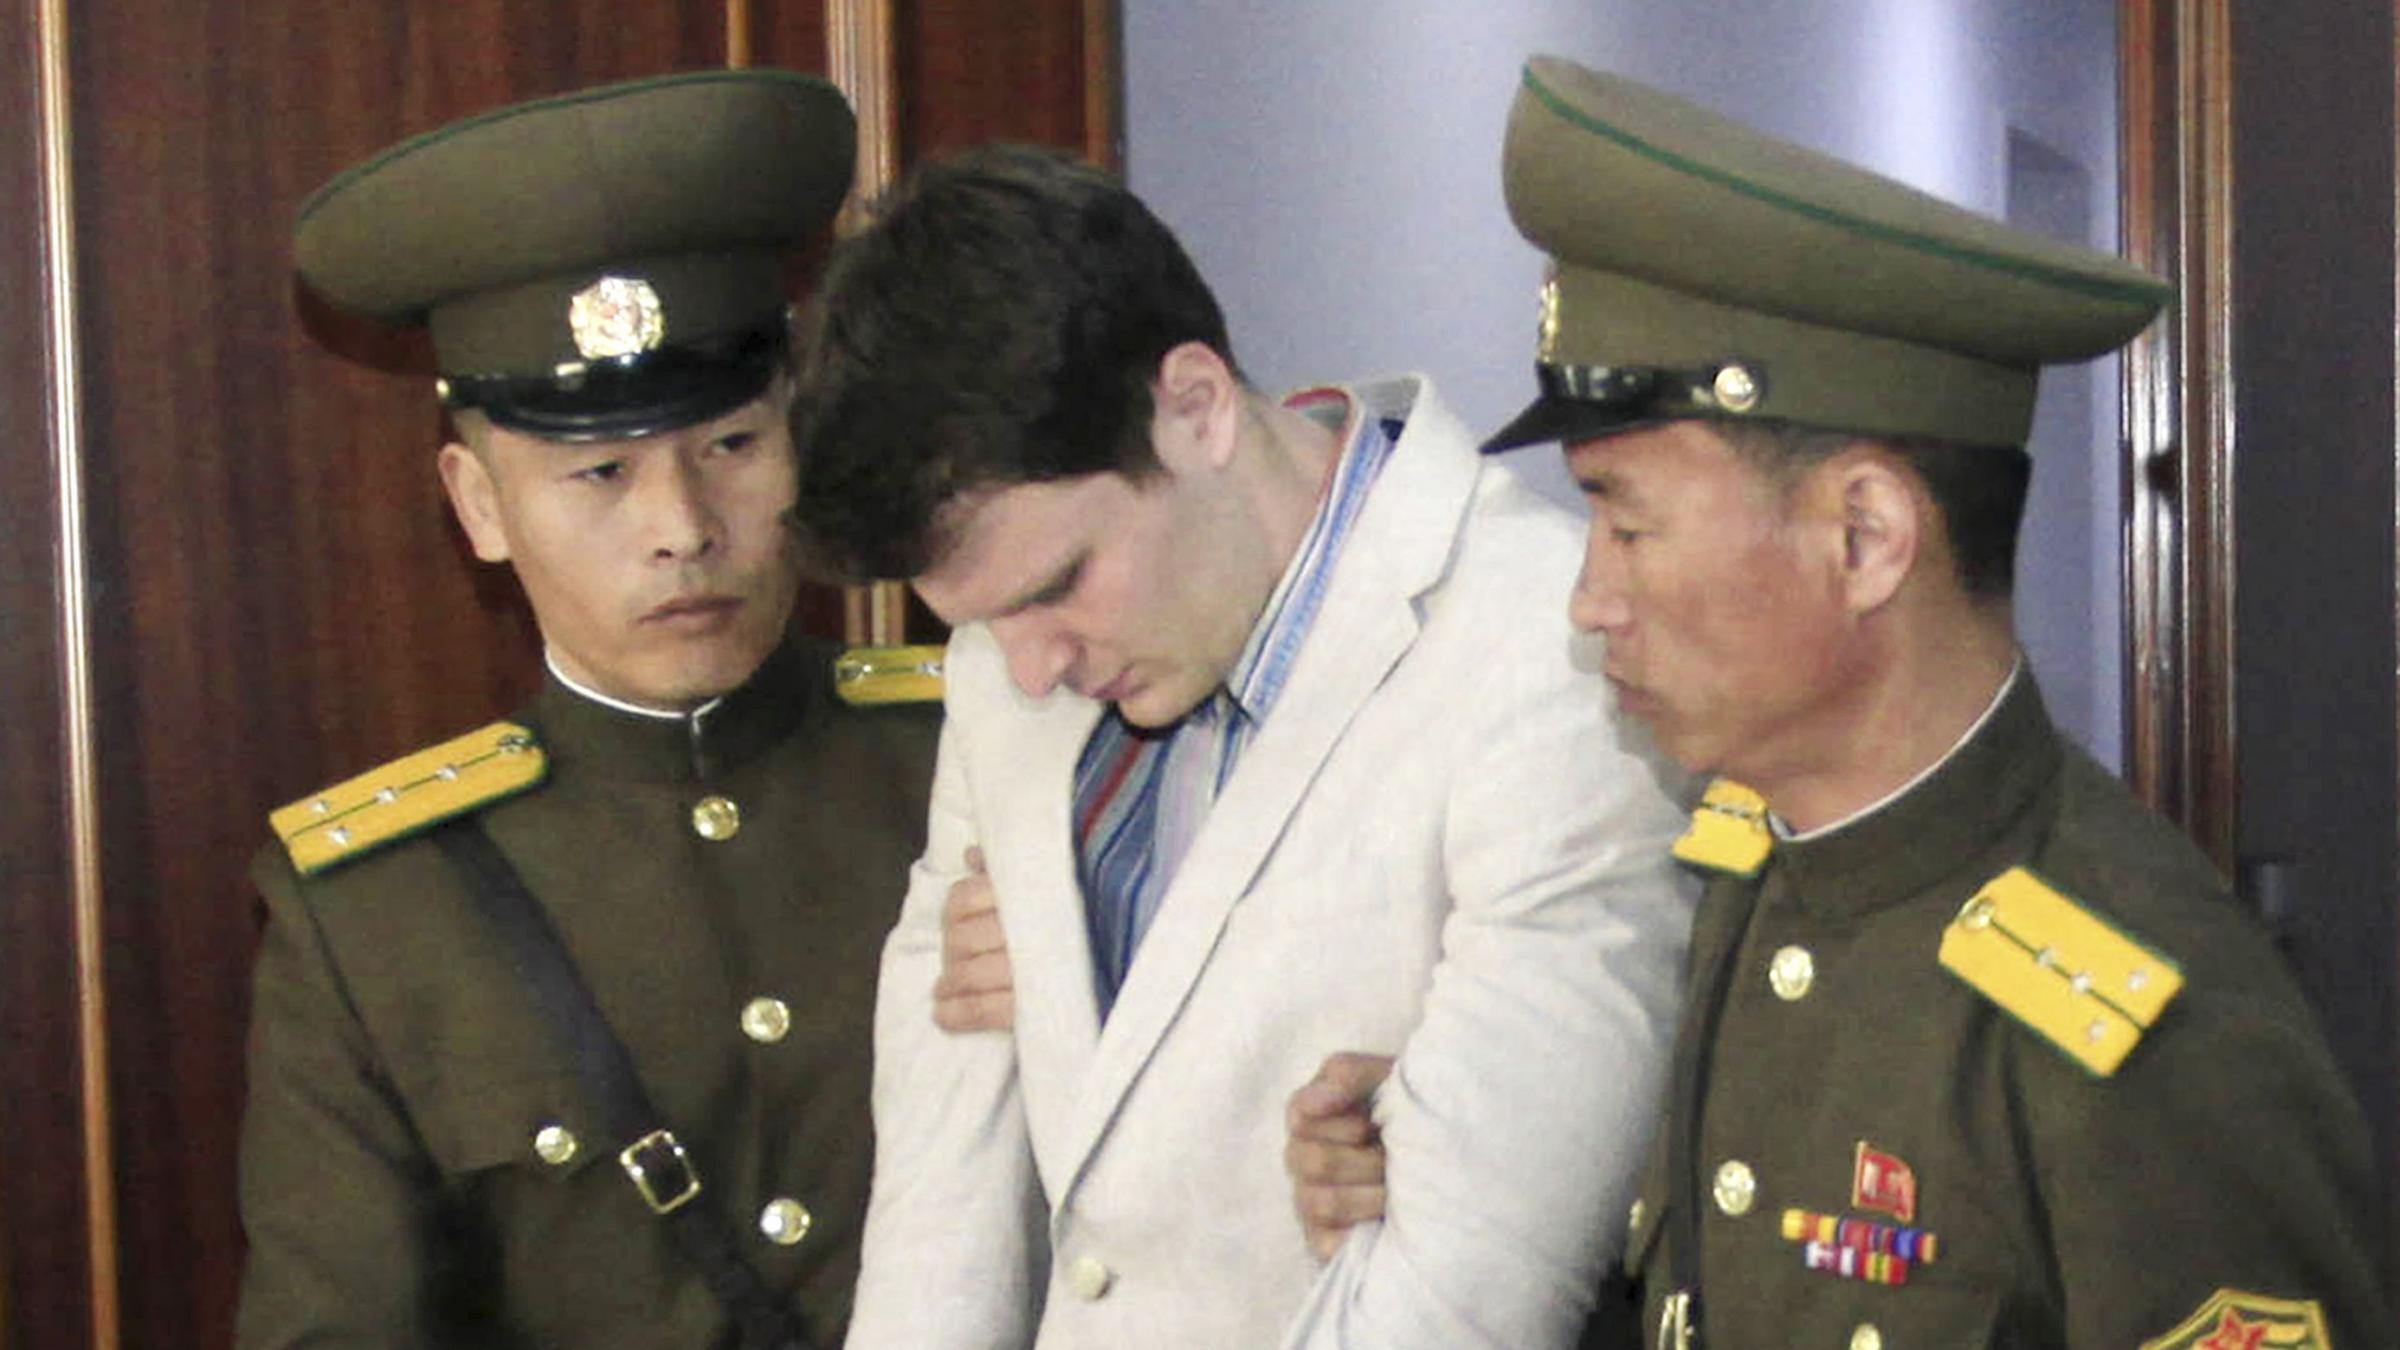 U.S. student, freed from North Korea with neurological injury, was 'brutalized' - father